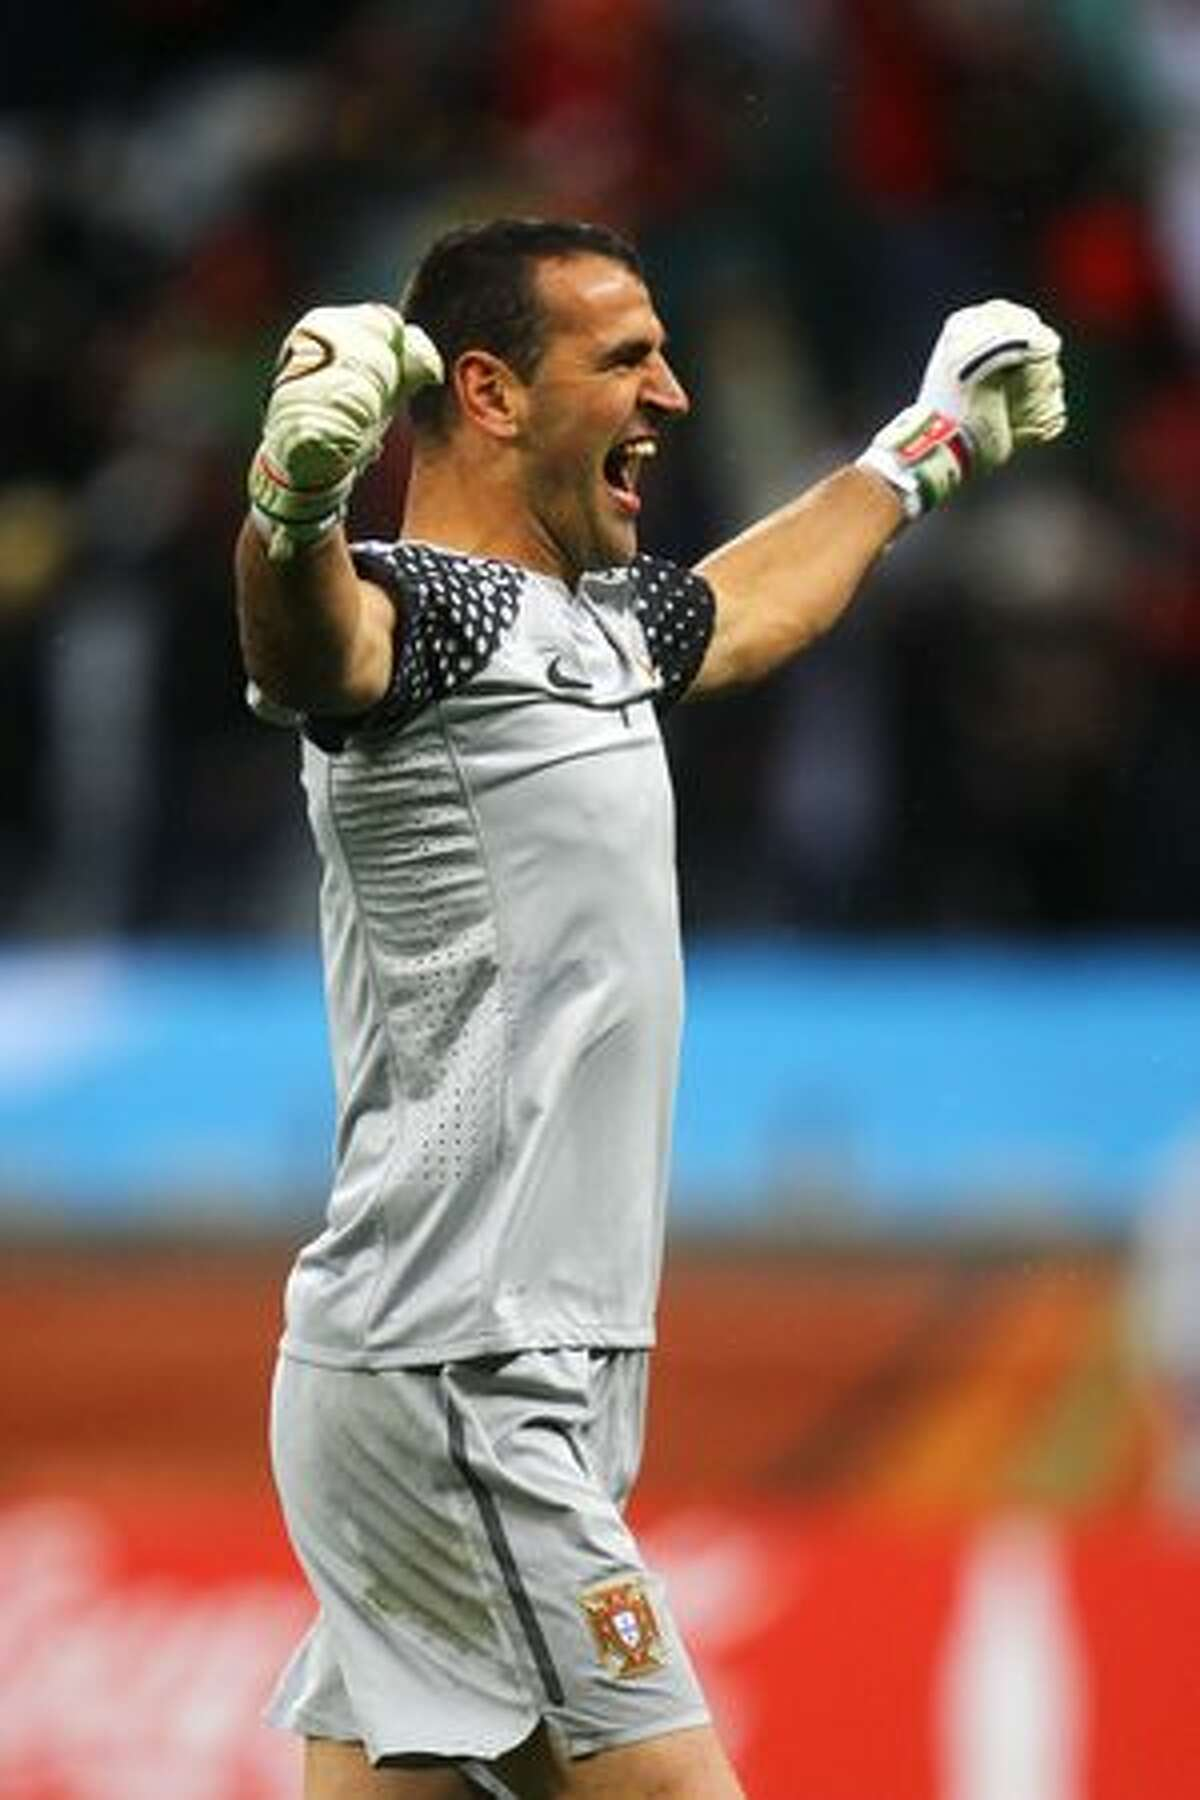 Eduardo of Portugal celebrates his team going ahead during the World Cup Group G match between Portugal and North Korea at the Green Point Stadium on Monday in Cape Town, South Africa.